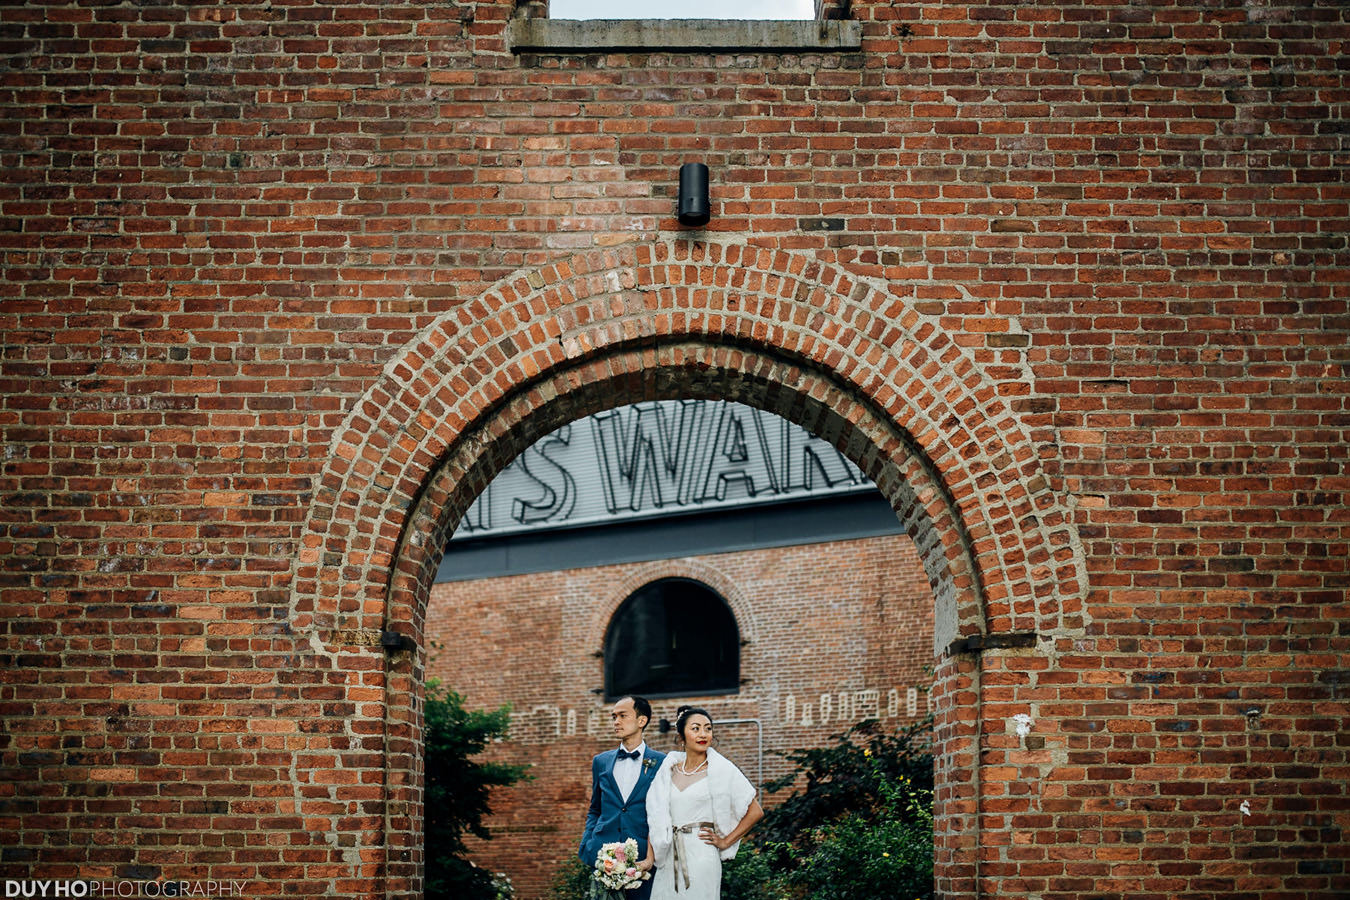 DUMBO Loft wedding photo | Brookyln, New York | Duy Ho Photography